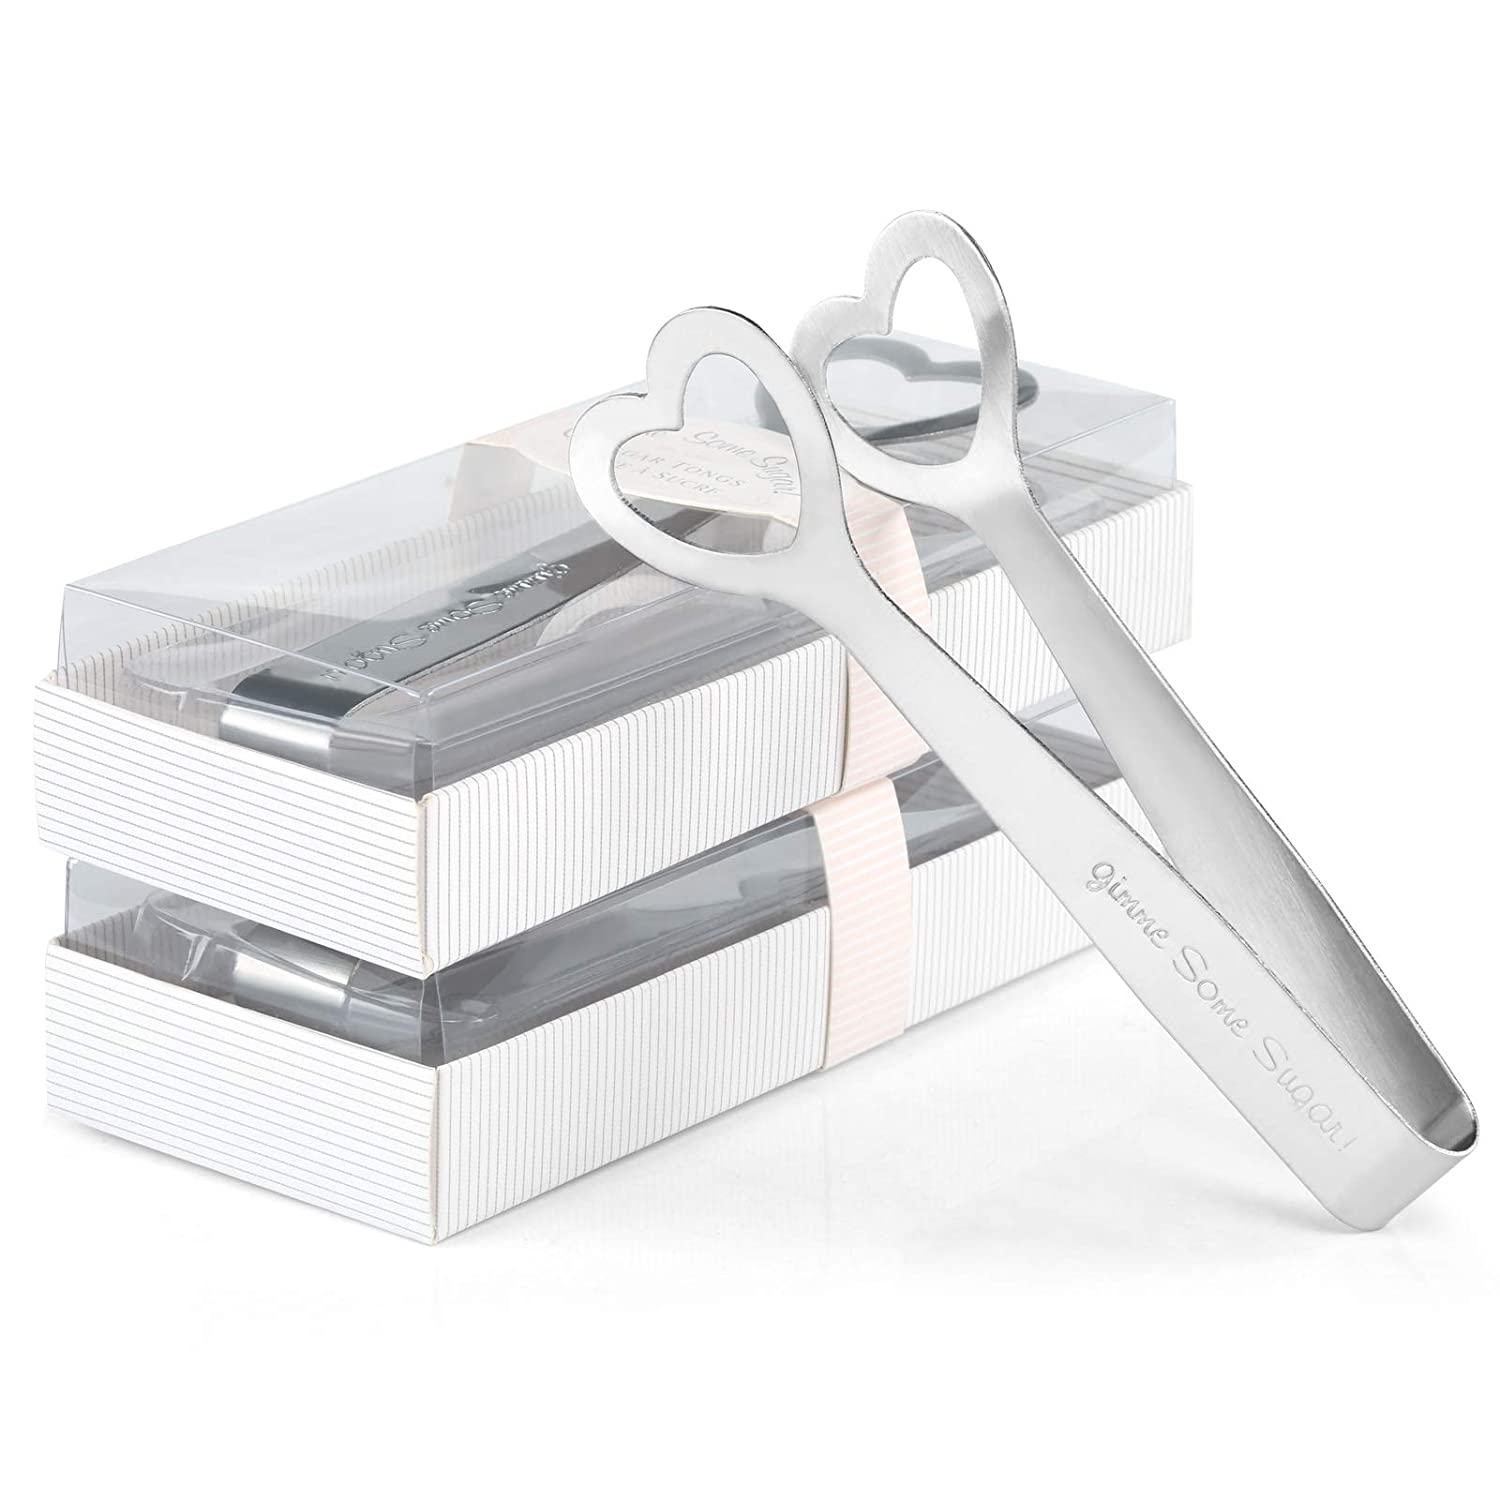 Kesoto Stainless Steel Sugar Tongs Love Heart Shaped Clip Ice Tongs Kitchenware Wedding Favors Silver 3 Piece